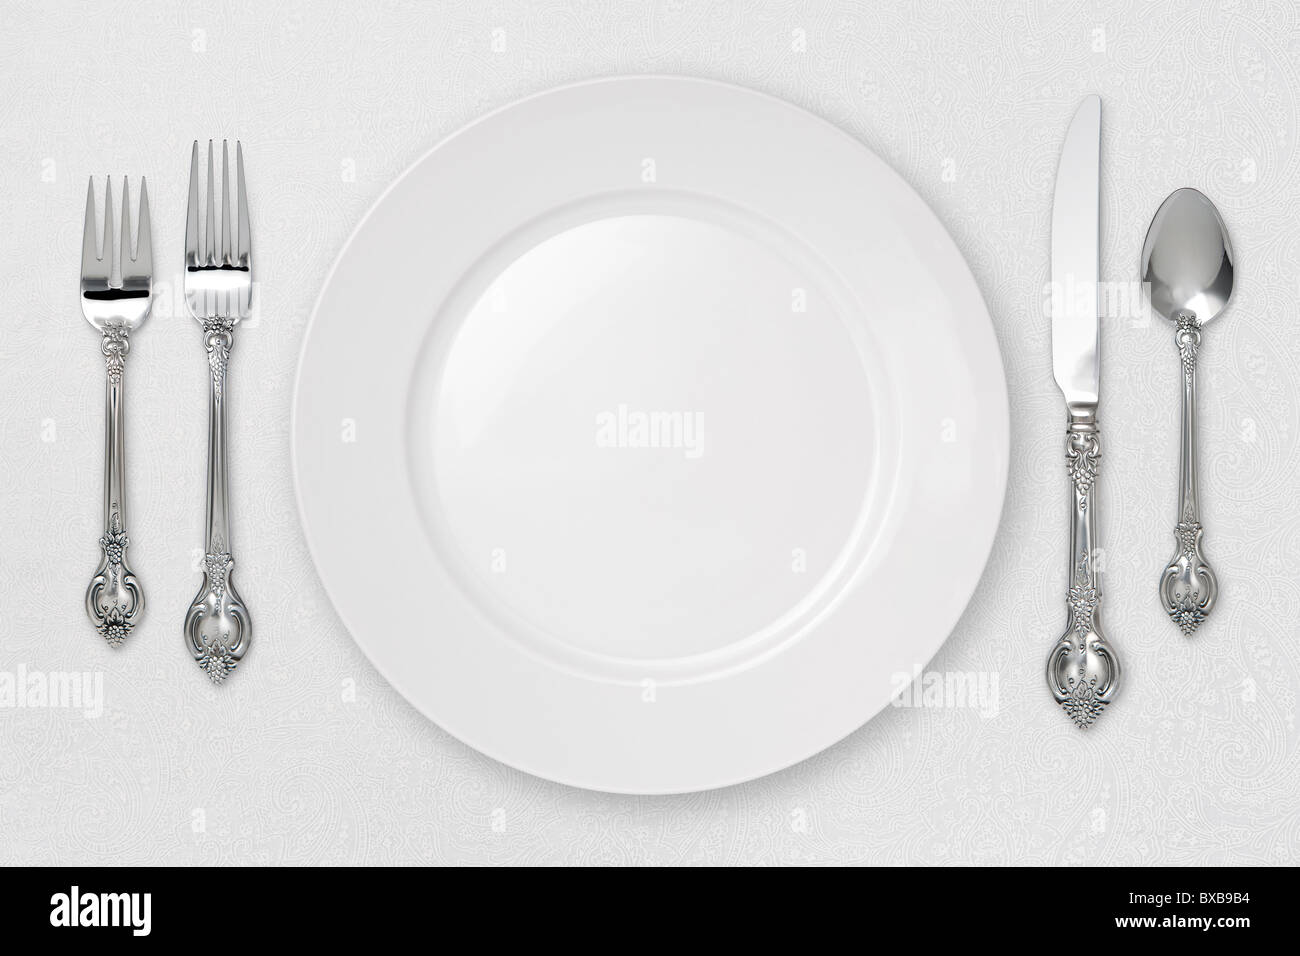 White Place Setting on tablecloth. - Stock Image